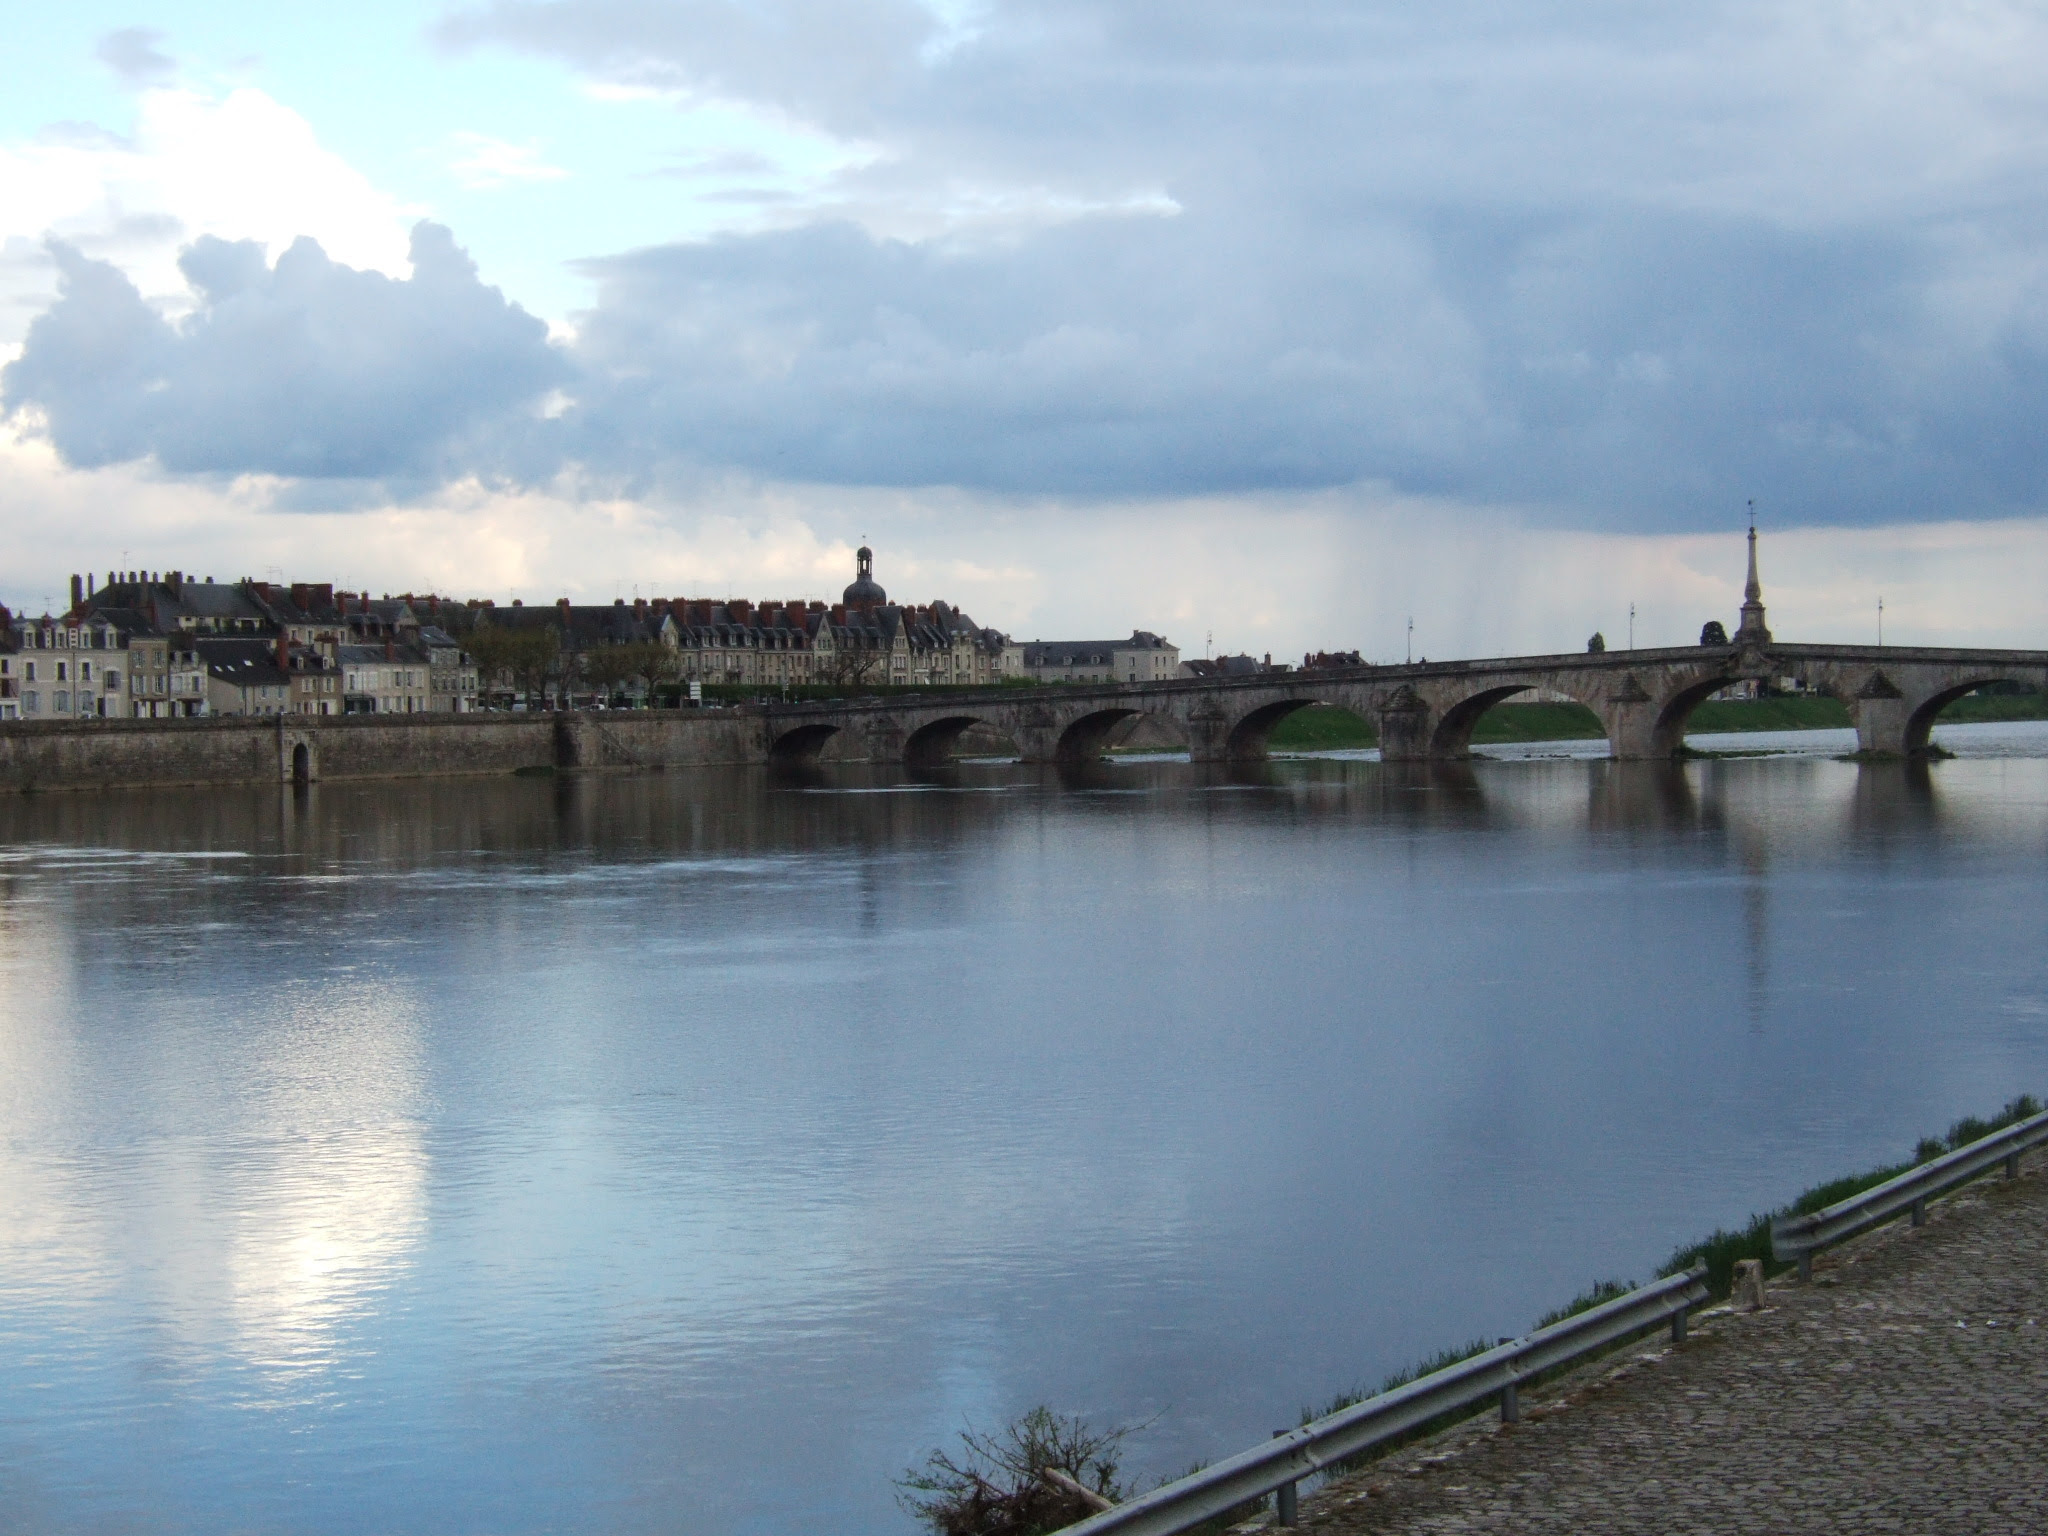 http://upload.wikimedia.org/wikipedia/commons/1/12/Loire_River_Blois.jpg